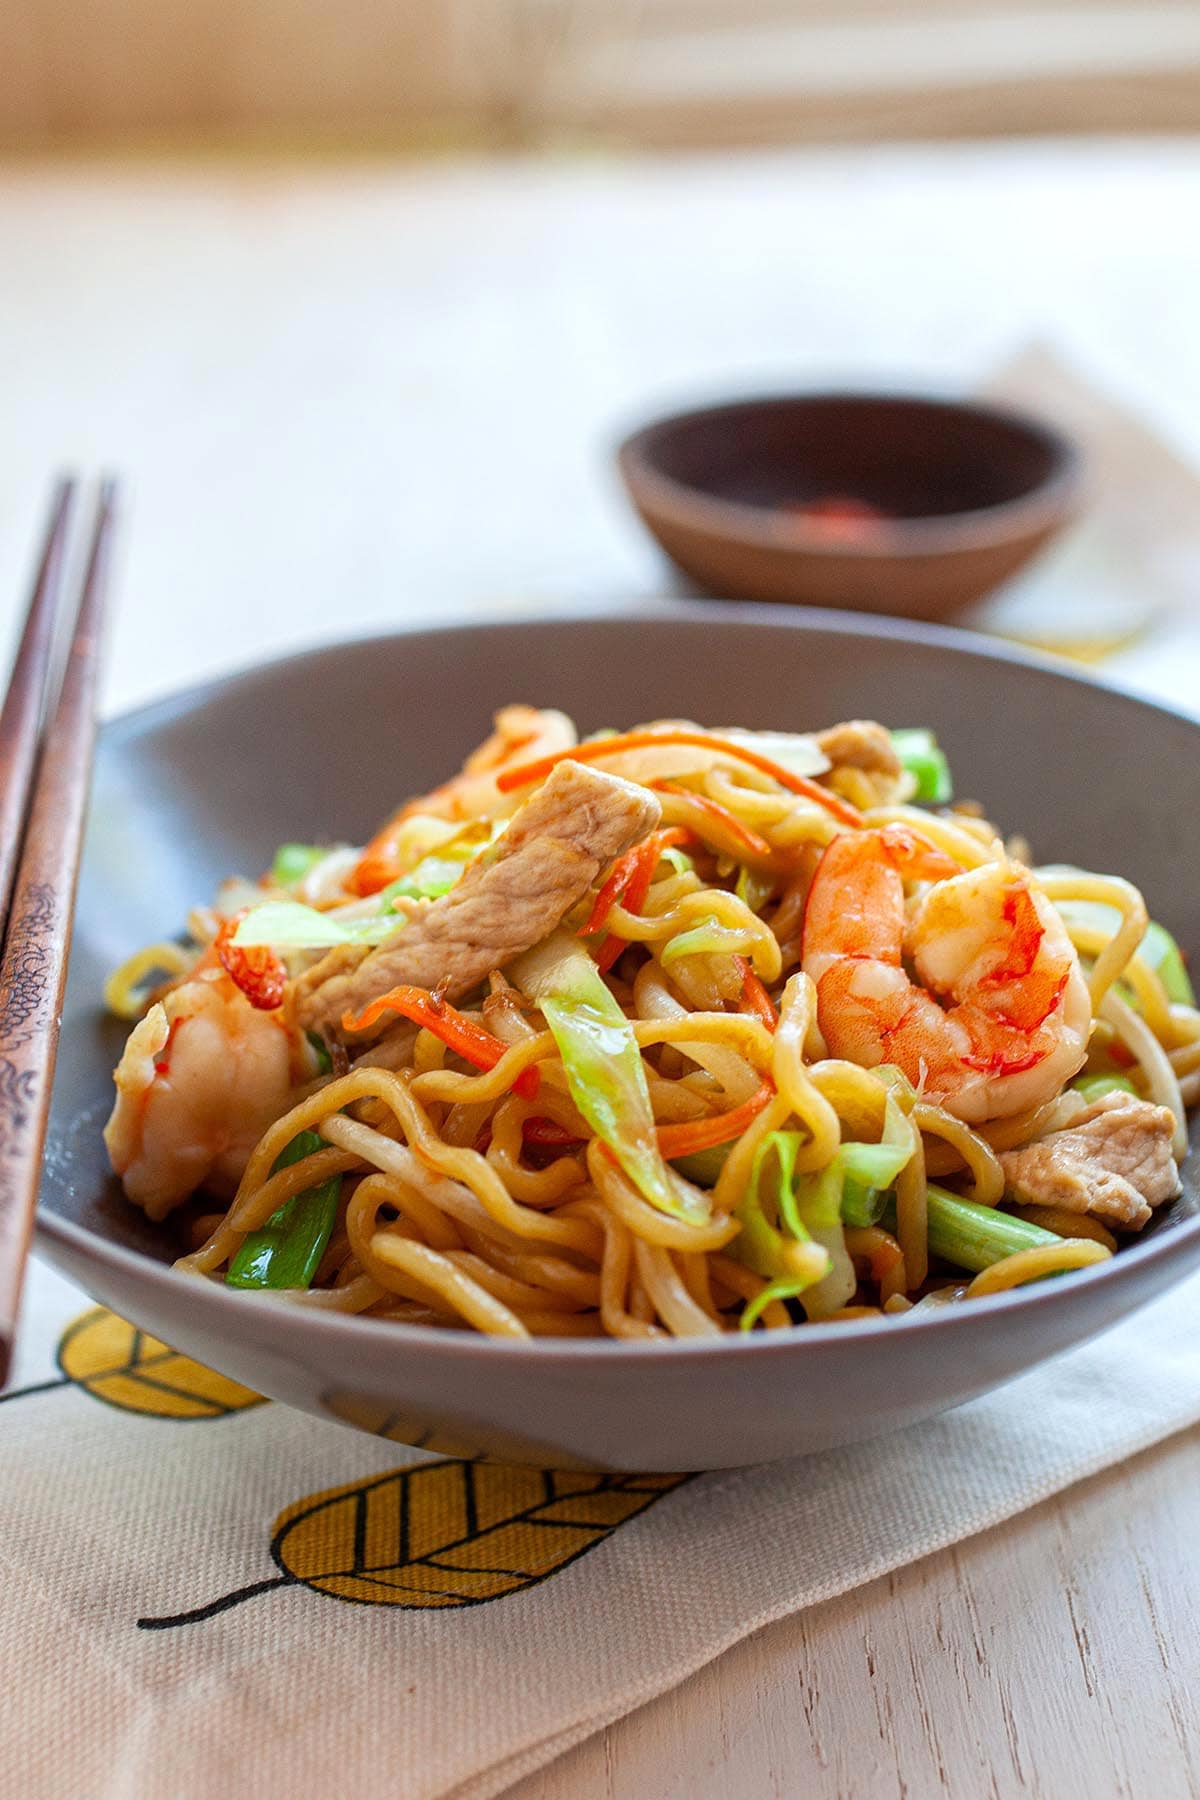 Chow mein recipe with chow mein noodles, vegetables and pork.